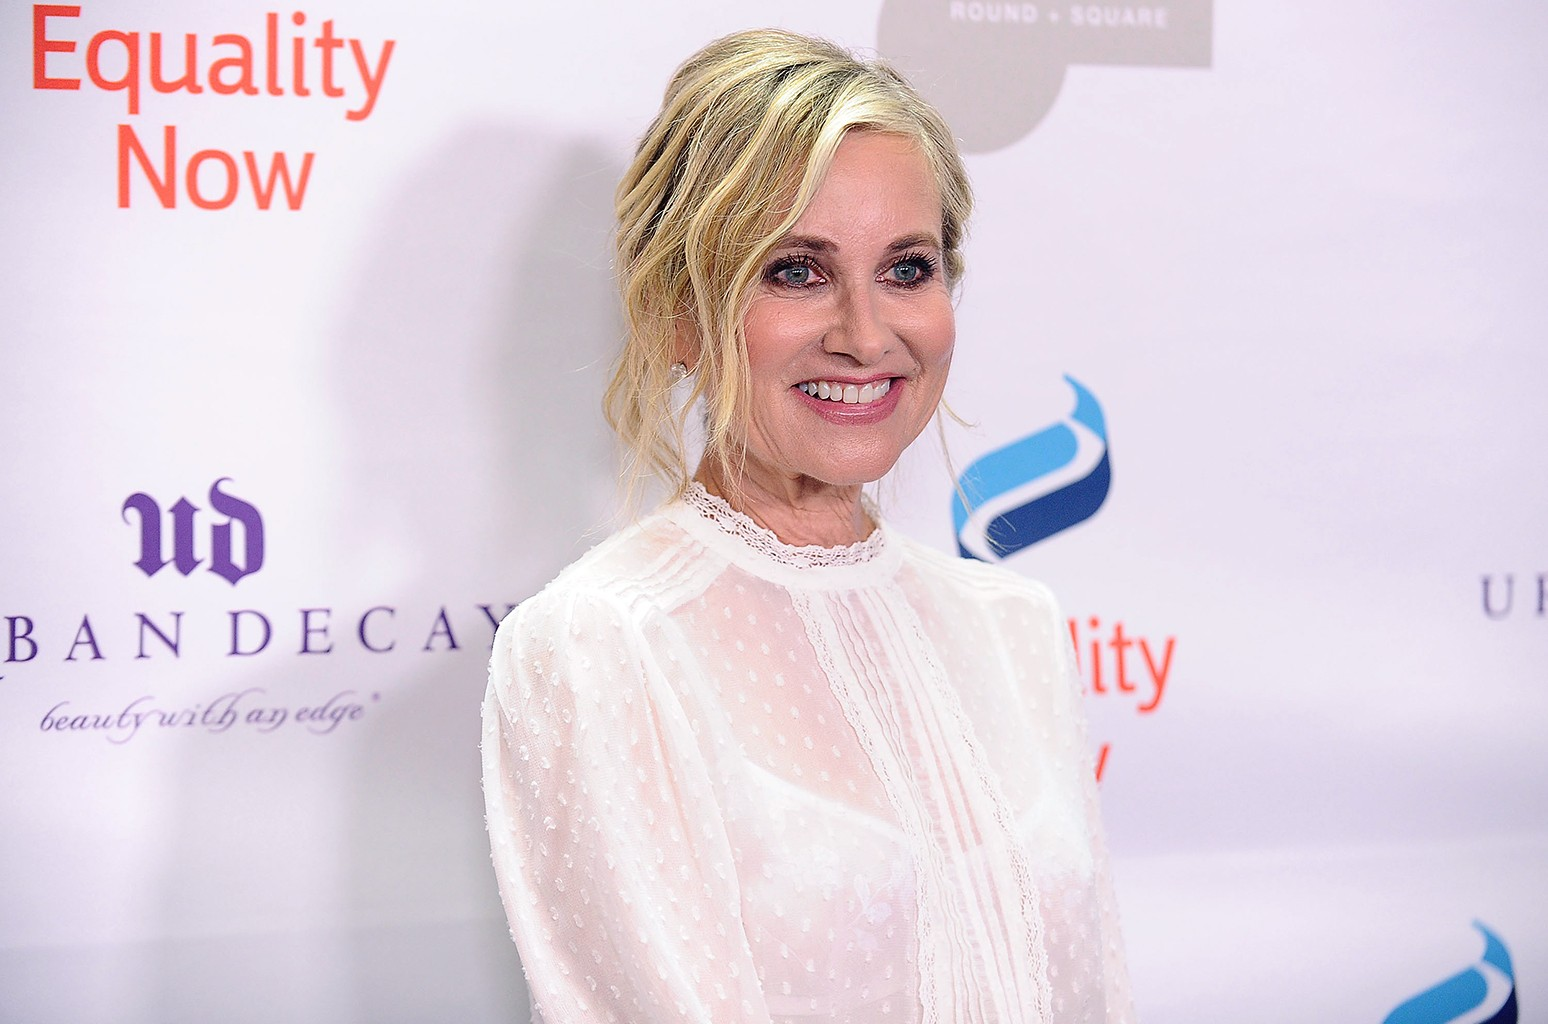 """Maureen McCormick attends Equality Now's 3rd annual """"Make Equality Reality"""" gala at Montage Beverly Hills on Dec. 5, 2016 in Beverly Hills, Calif."""